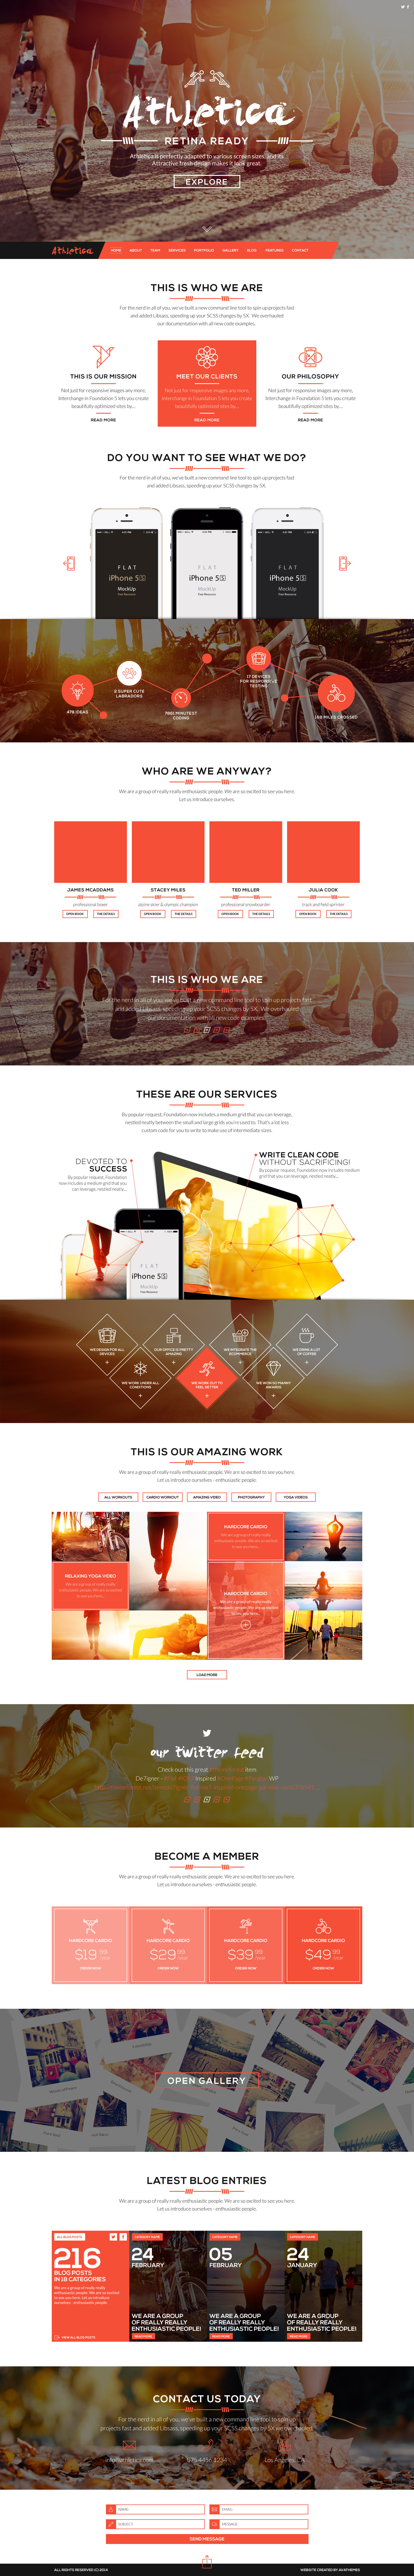 athletica retina parallax onepage web template by avathemes themeforest. Black Bedroom Furniture Sets. Home Design Ideas